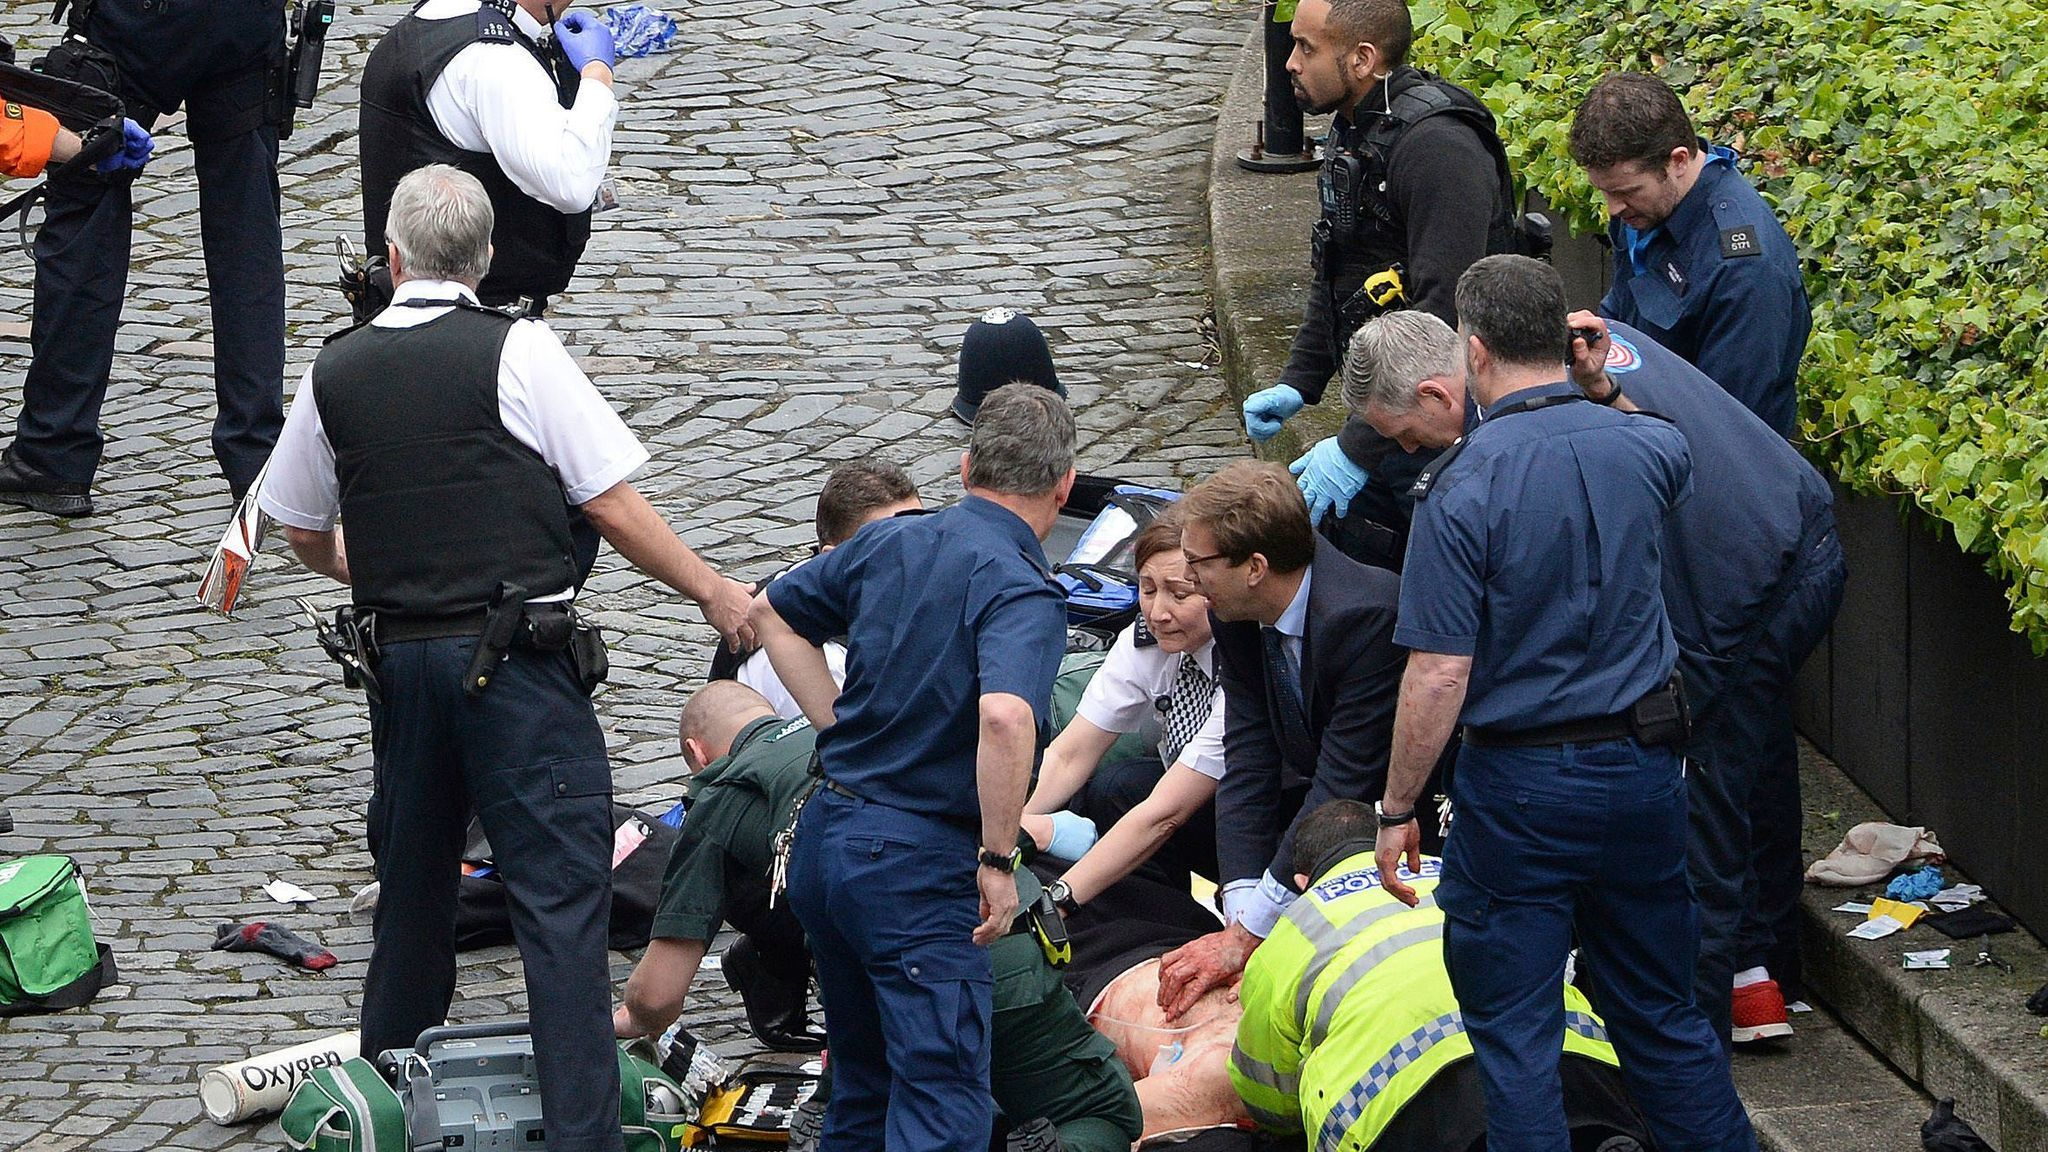 Conservative Member of Parliament Tobias Ellwood, center, helps emergency services attend to an injured person outside the Houses of Parliament in London.